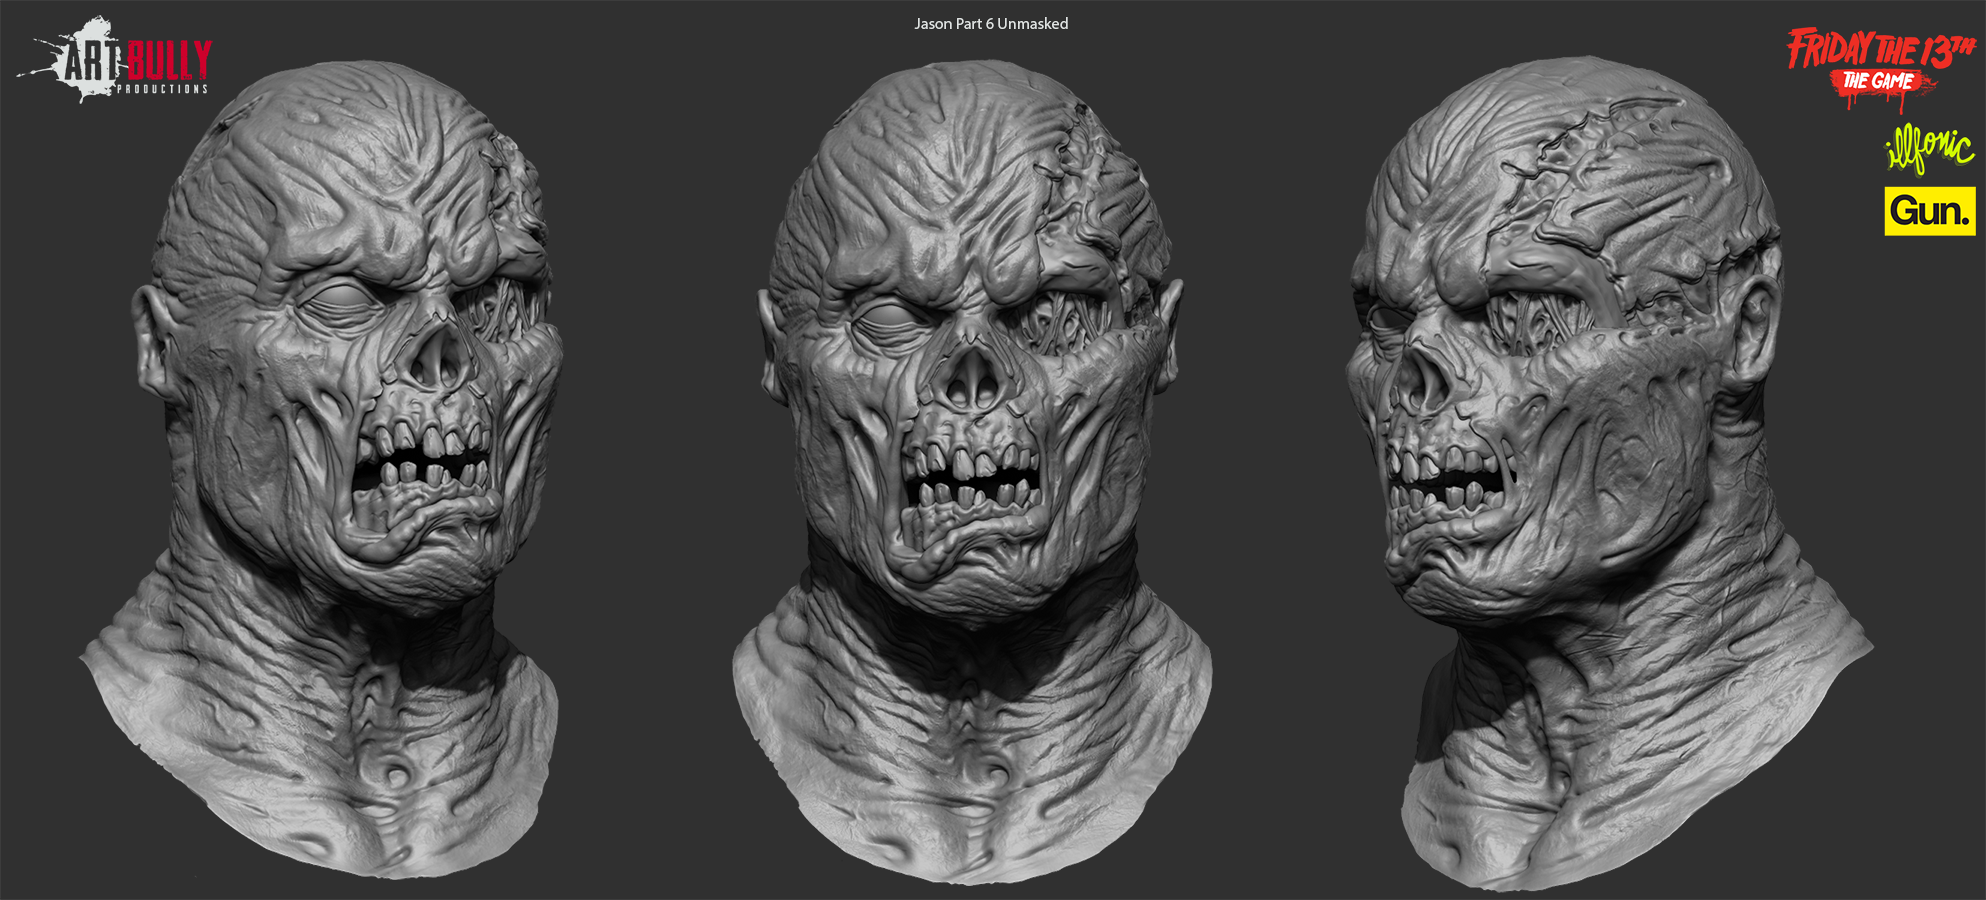 Jason_Part6_Highpoly_Unmasked_CU_01.png